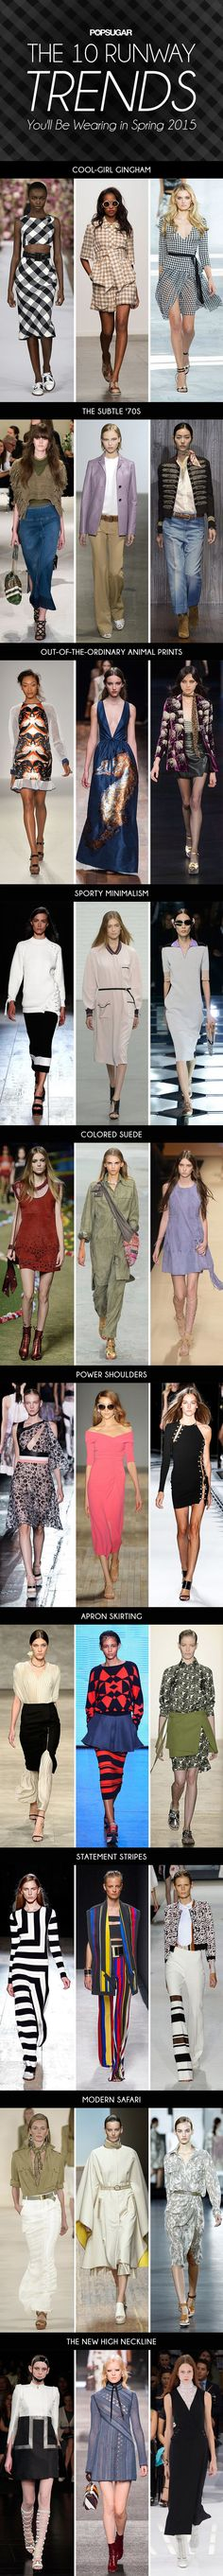 150+ Fashion Trends 2015 #fashiontrends #outfits2015